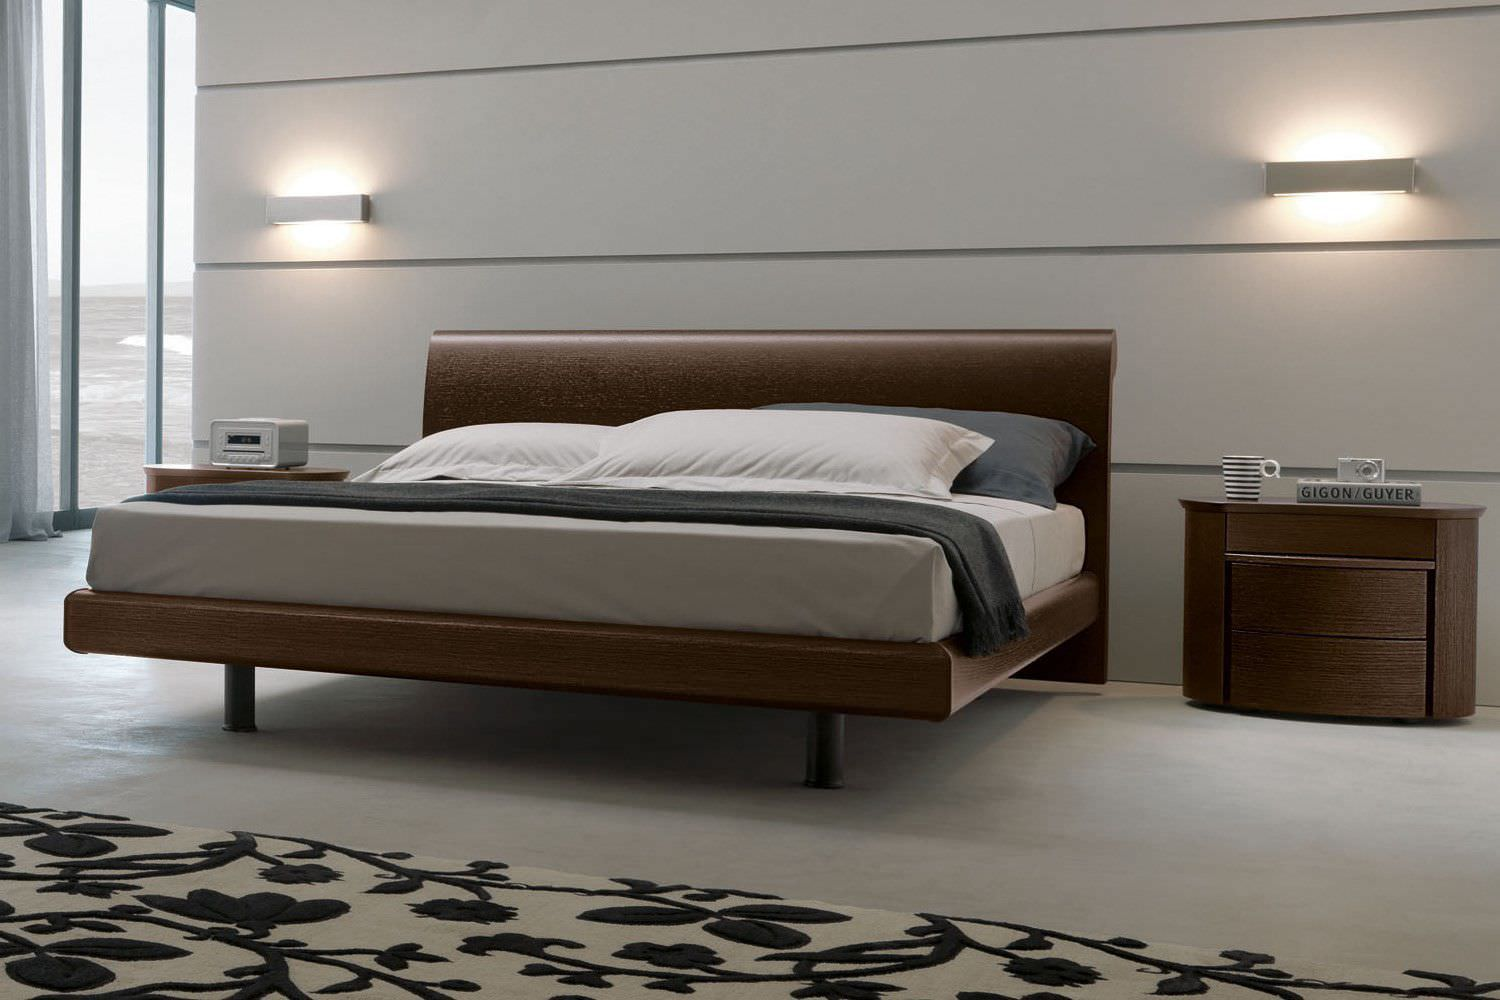 Letto Matrimoniale Maxi.Double Bed Contemporary Wooden Lacquered Wood Omra Napol